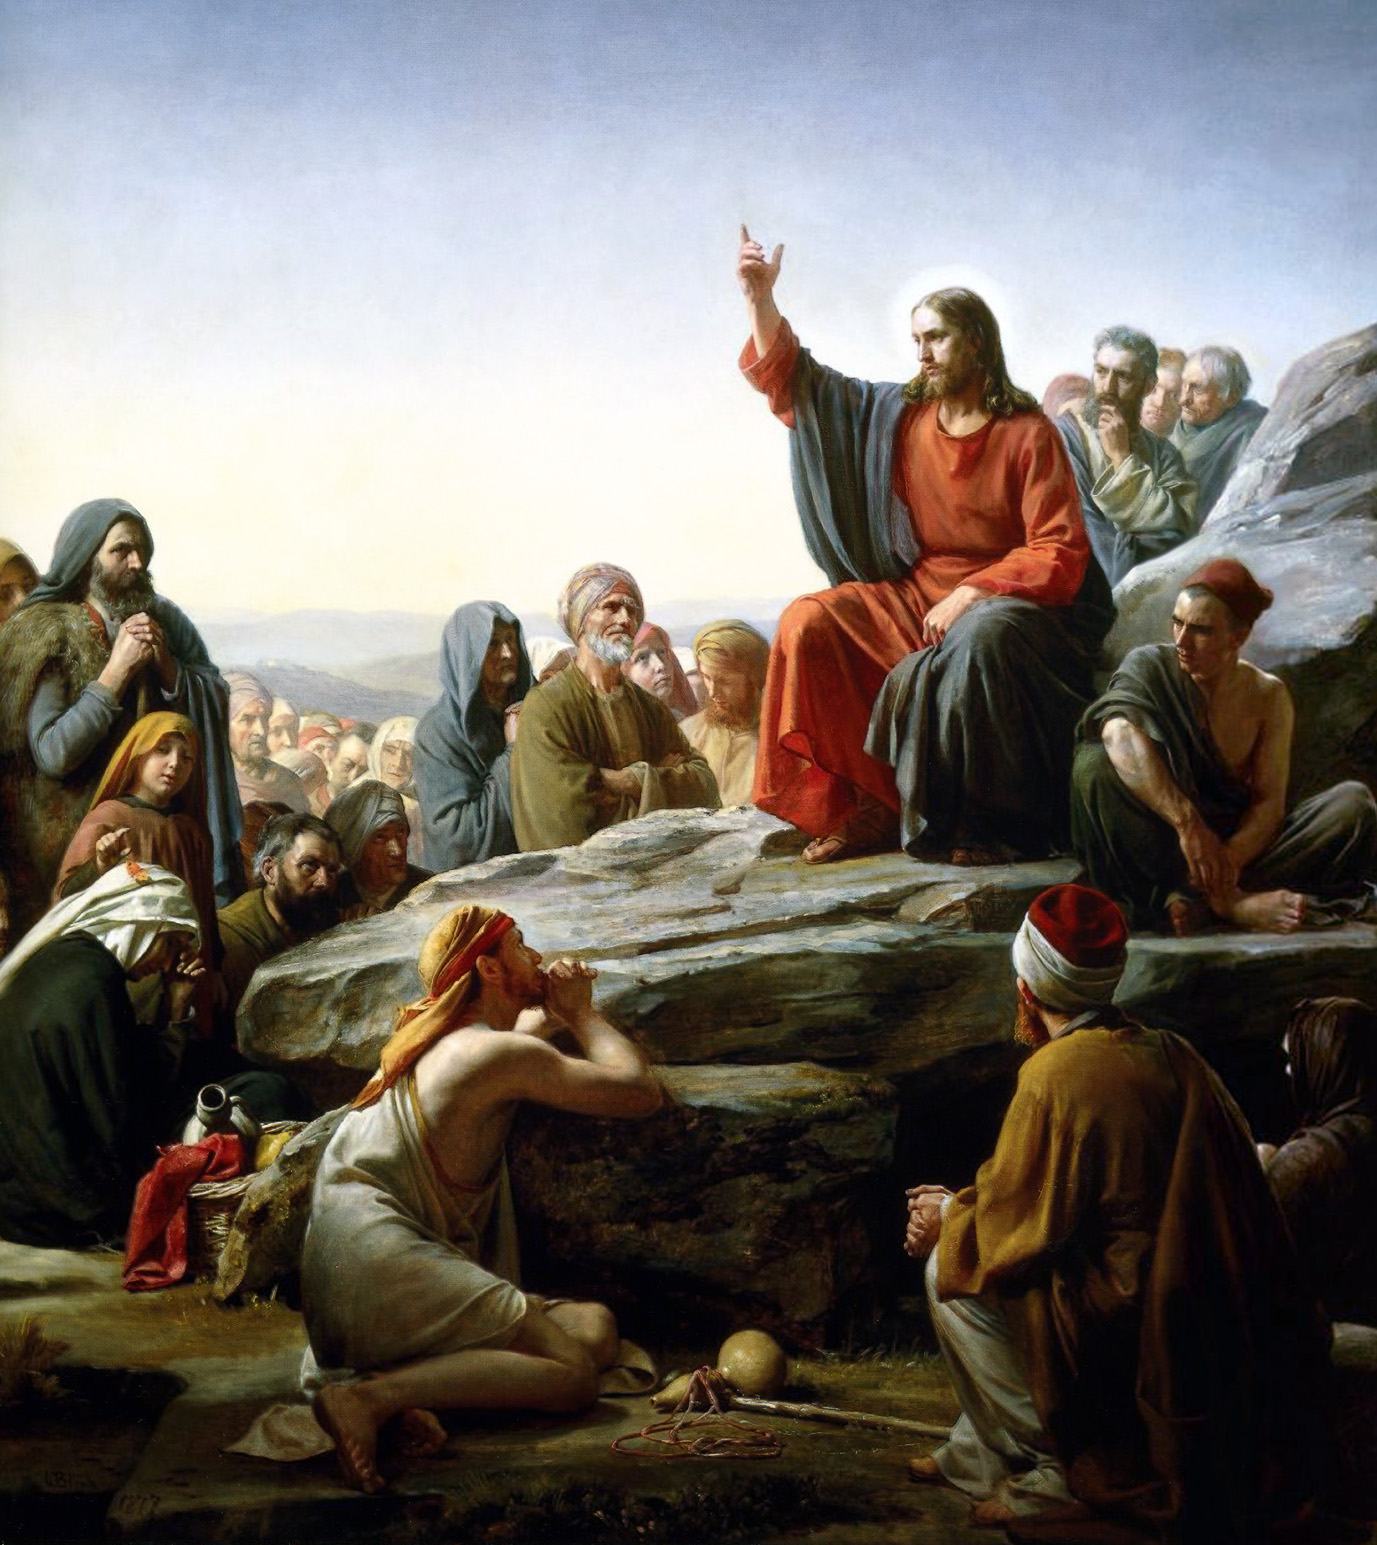 The Sermon on the Mount (1877), by Carl Heinrich Bloch